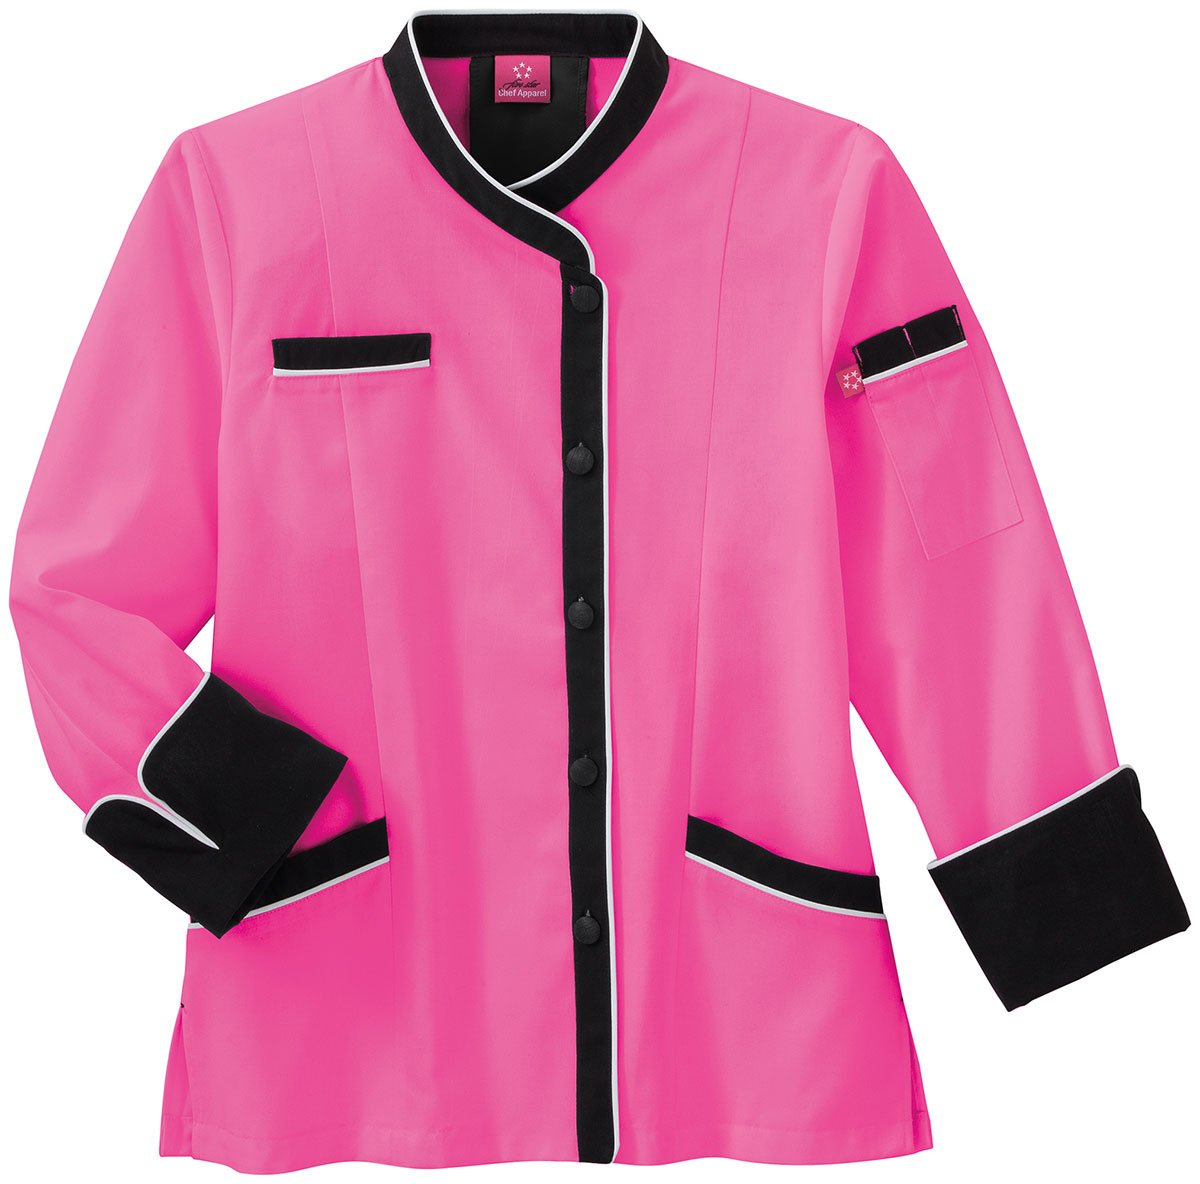 Five Star Chef Apparel Ladies Long Sleeve Executive Coat (Assorted Colors) (Large, Posh Pink) by White Swan